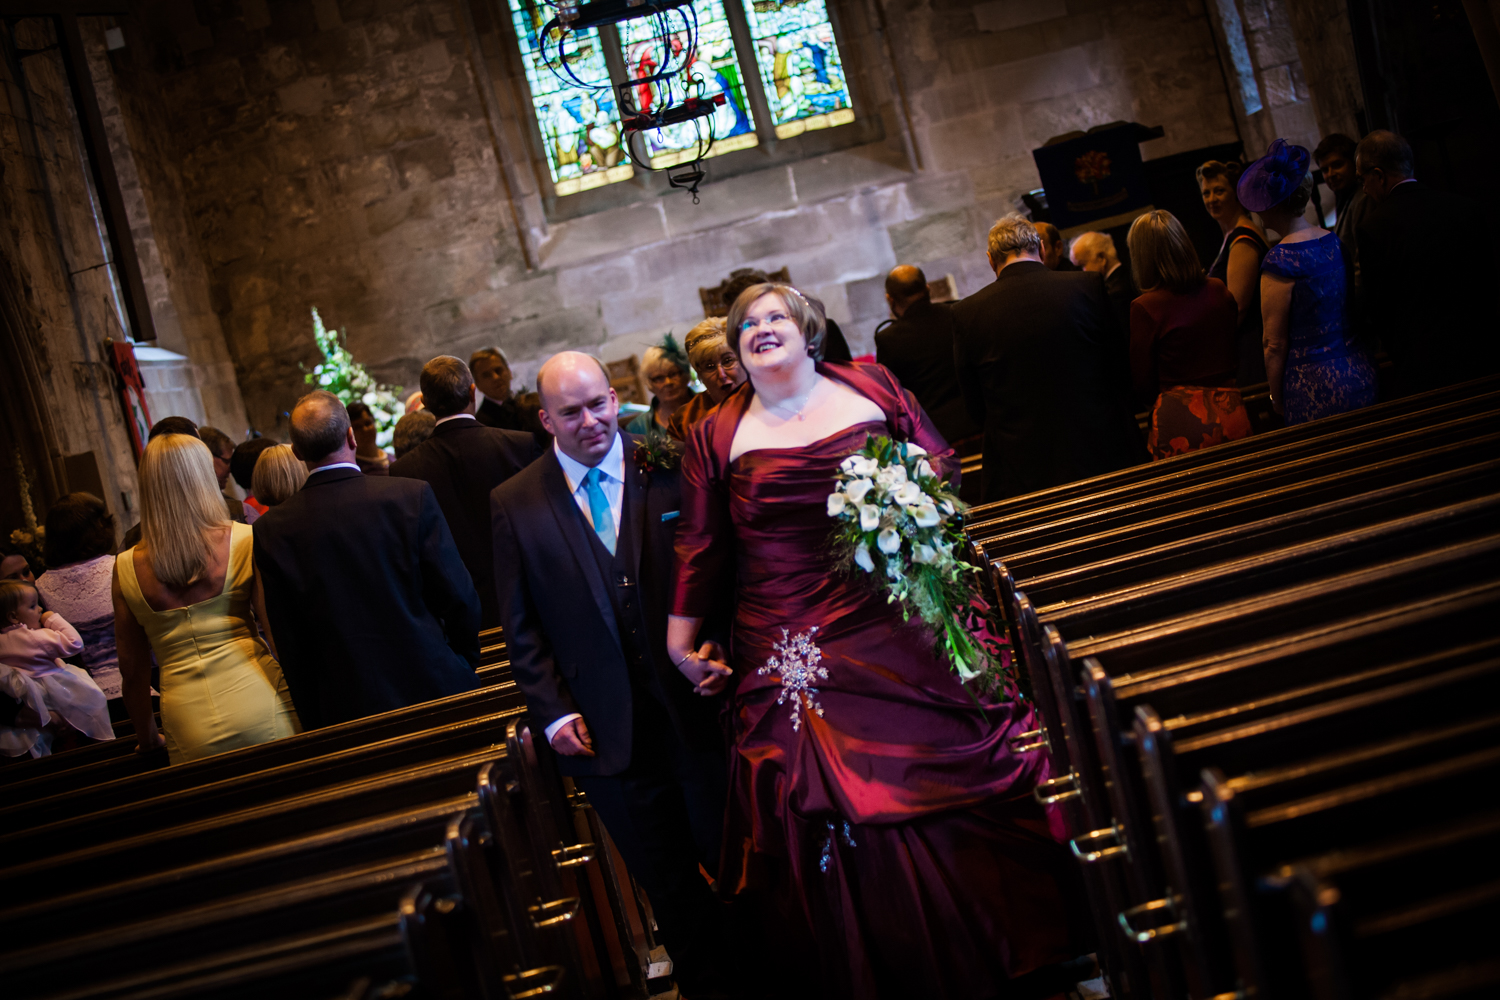 Clare and Charles wedding day blog-25.jpg